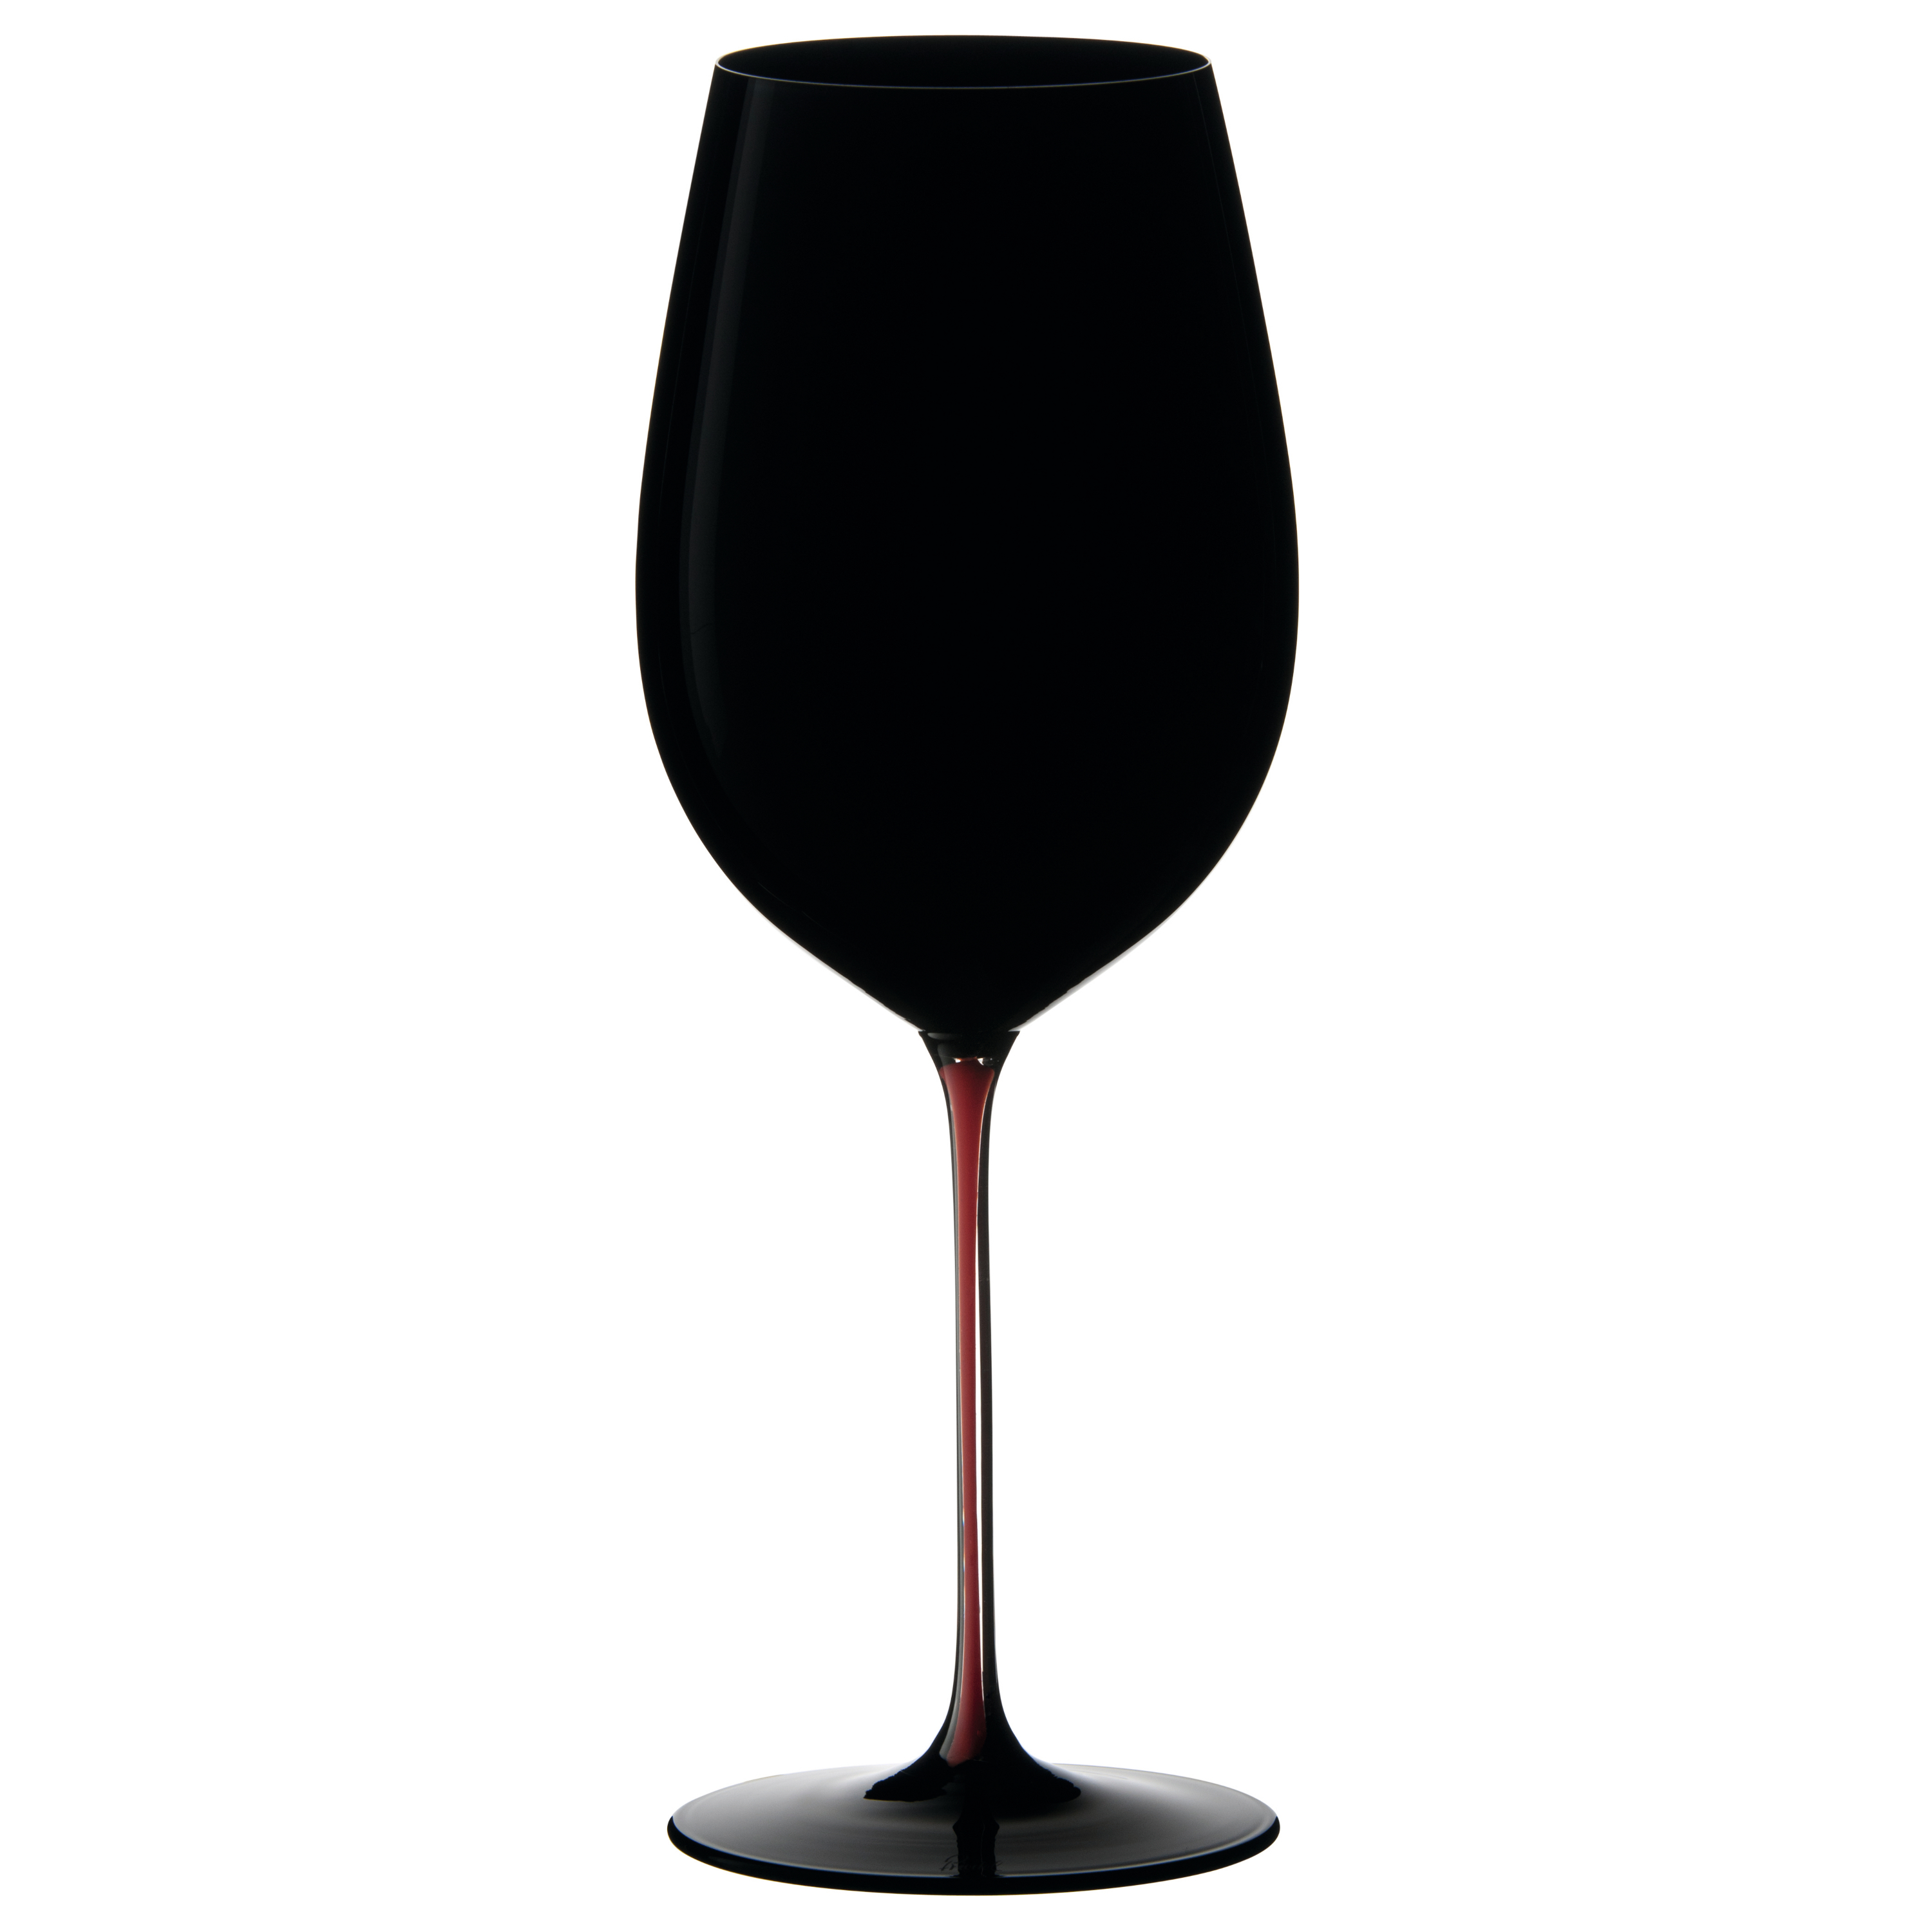 Riedel Sommeliers Black and Red Bordeaux Grand Cru Wine Glass, 30.5 Ounce